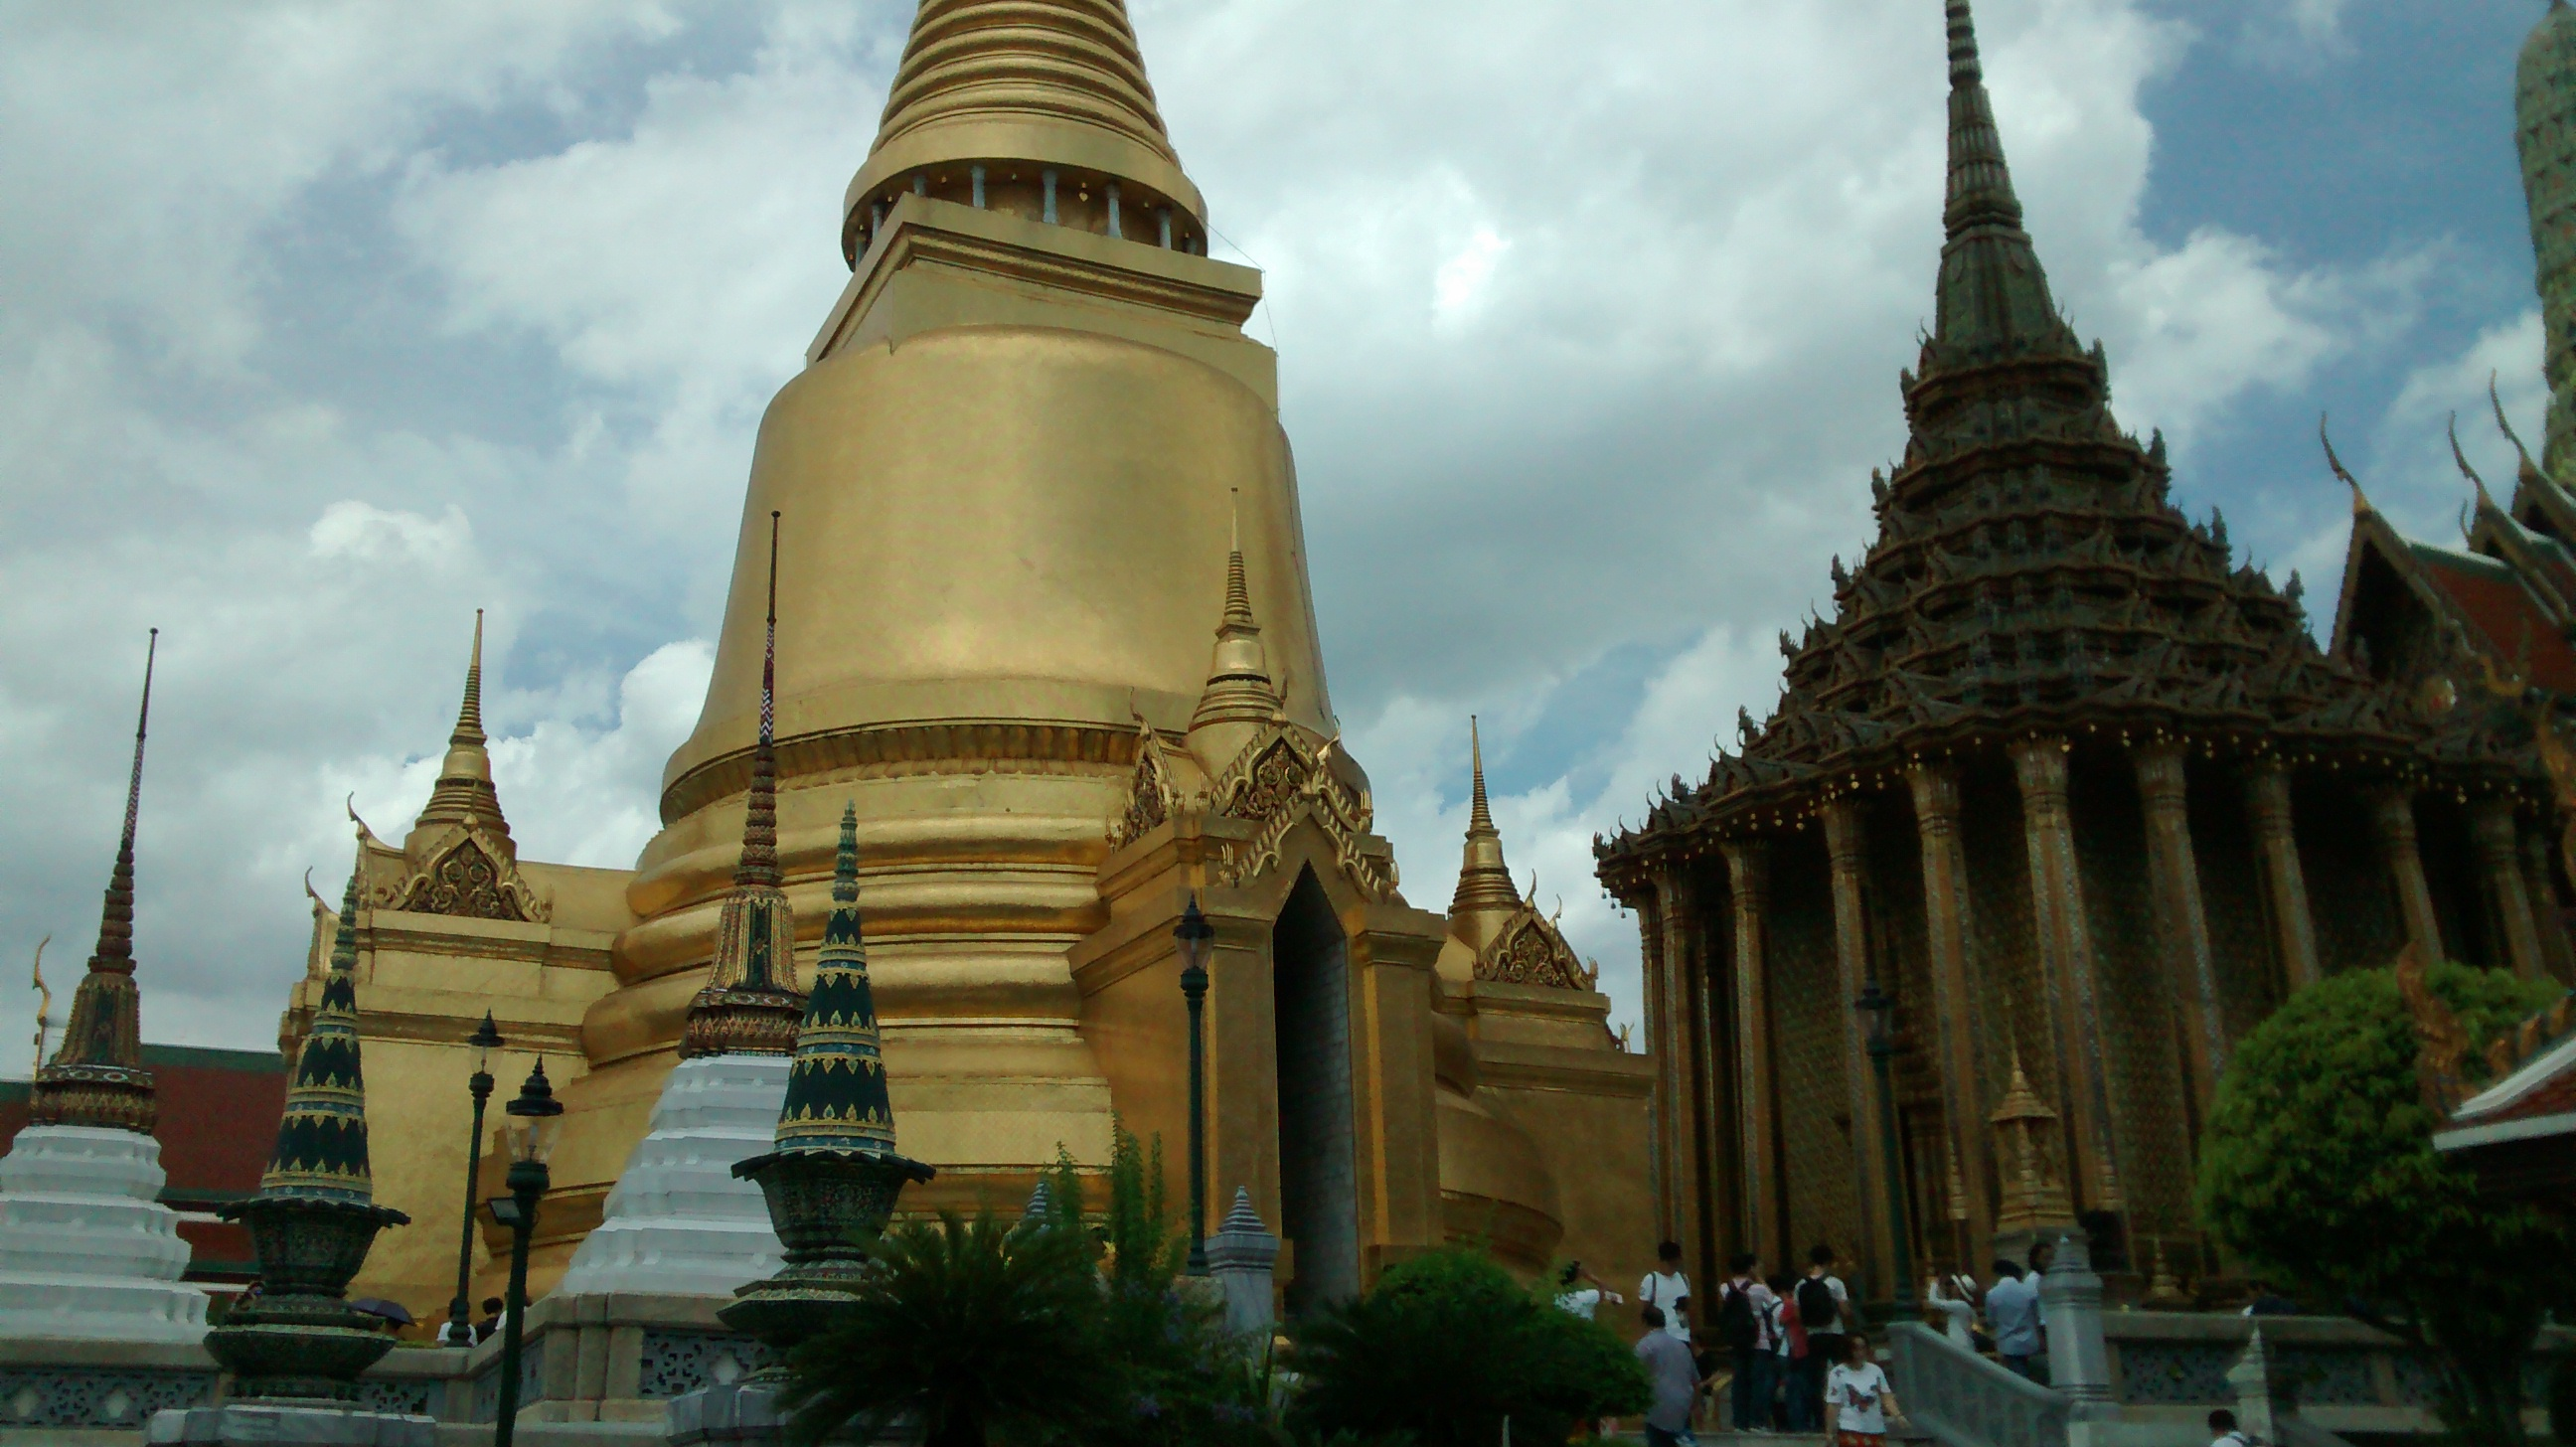 One of the nicer buildings in the Grand Palace